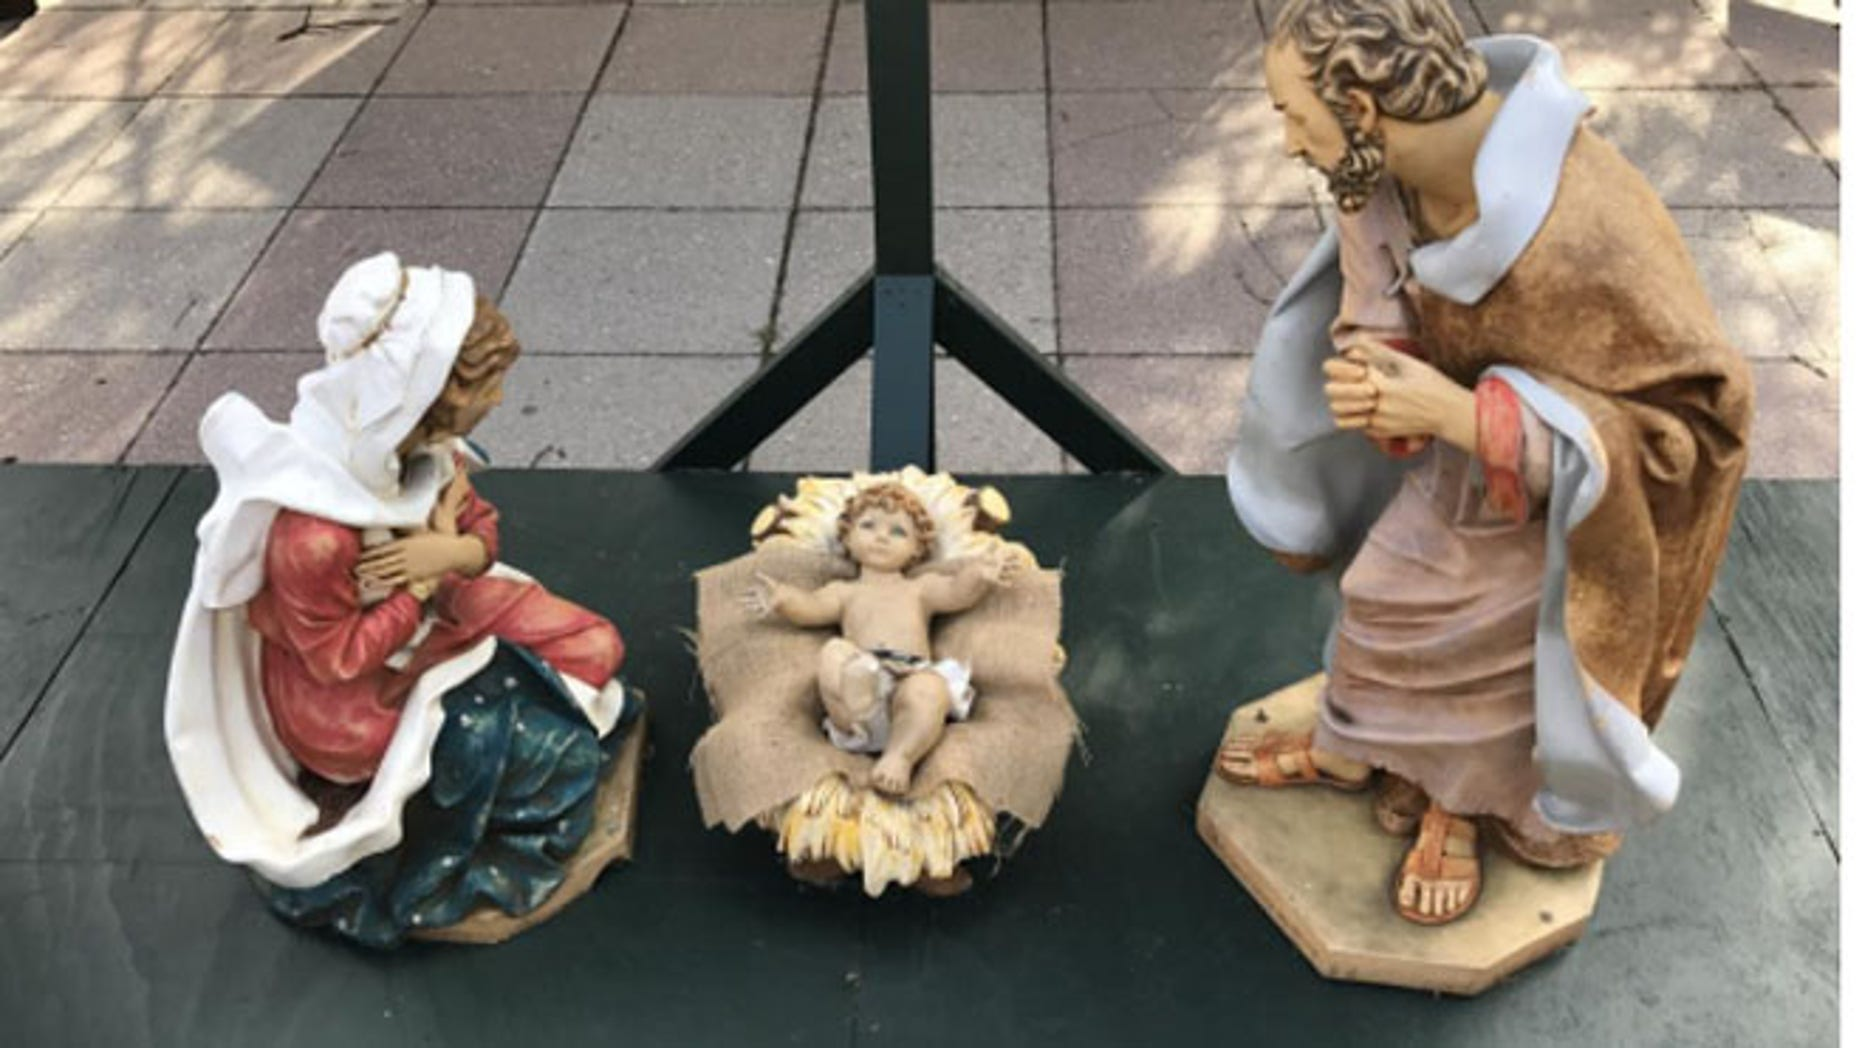 The Nativity scene in Bethlehem's Payrow Plaza. (Bethlehem Police Department)